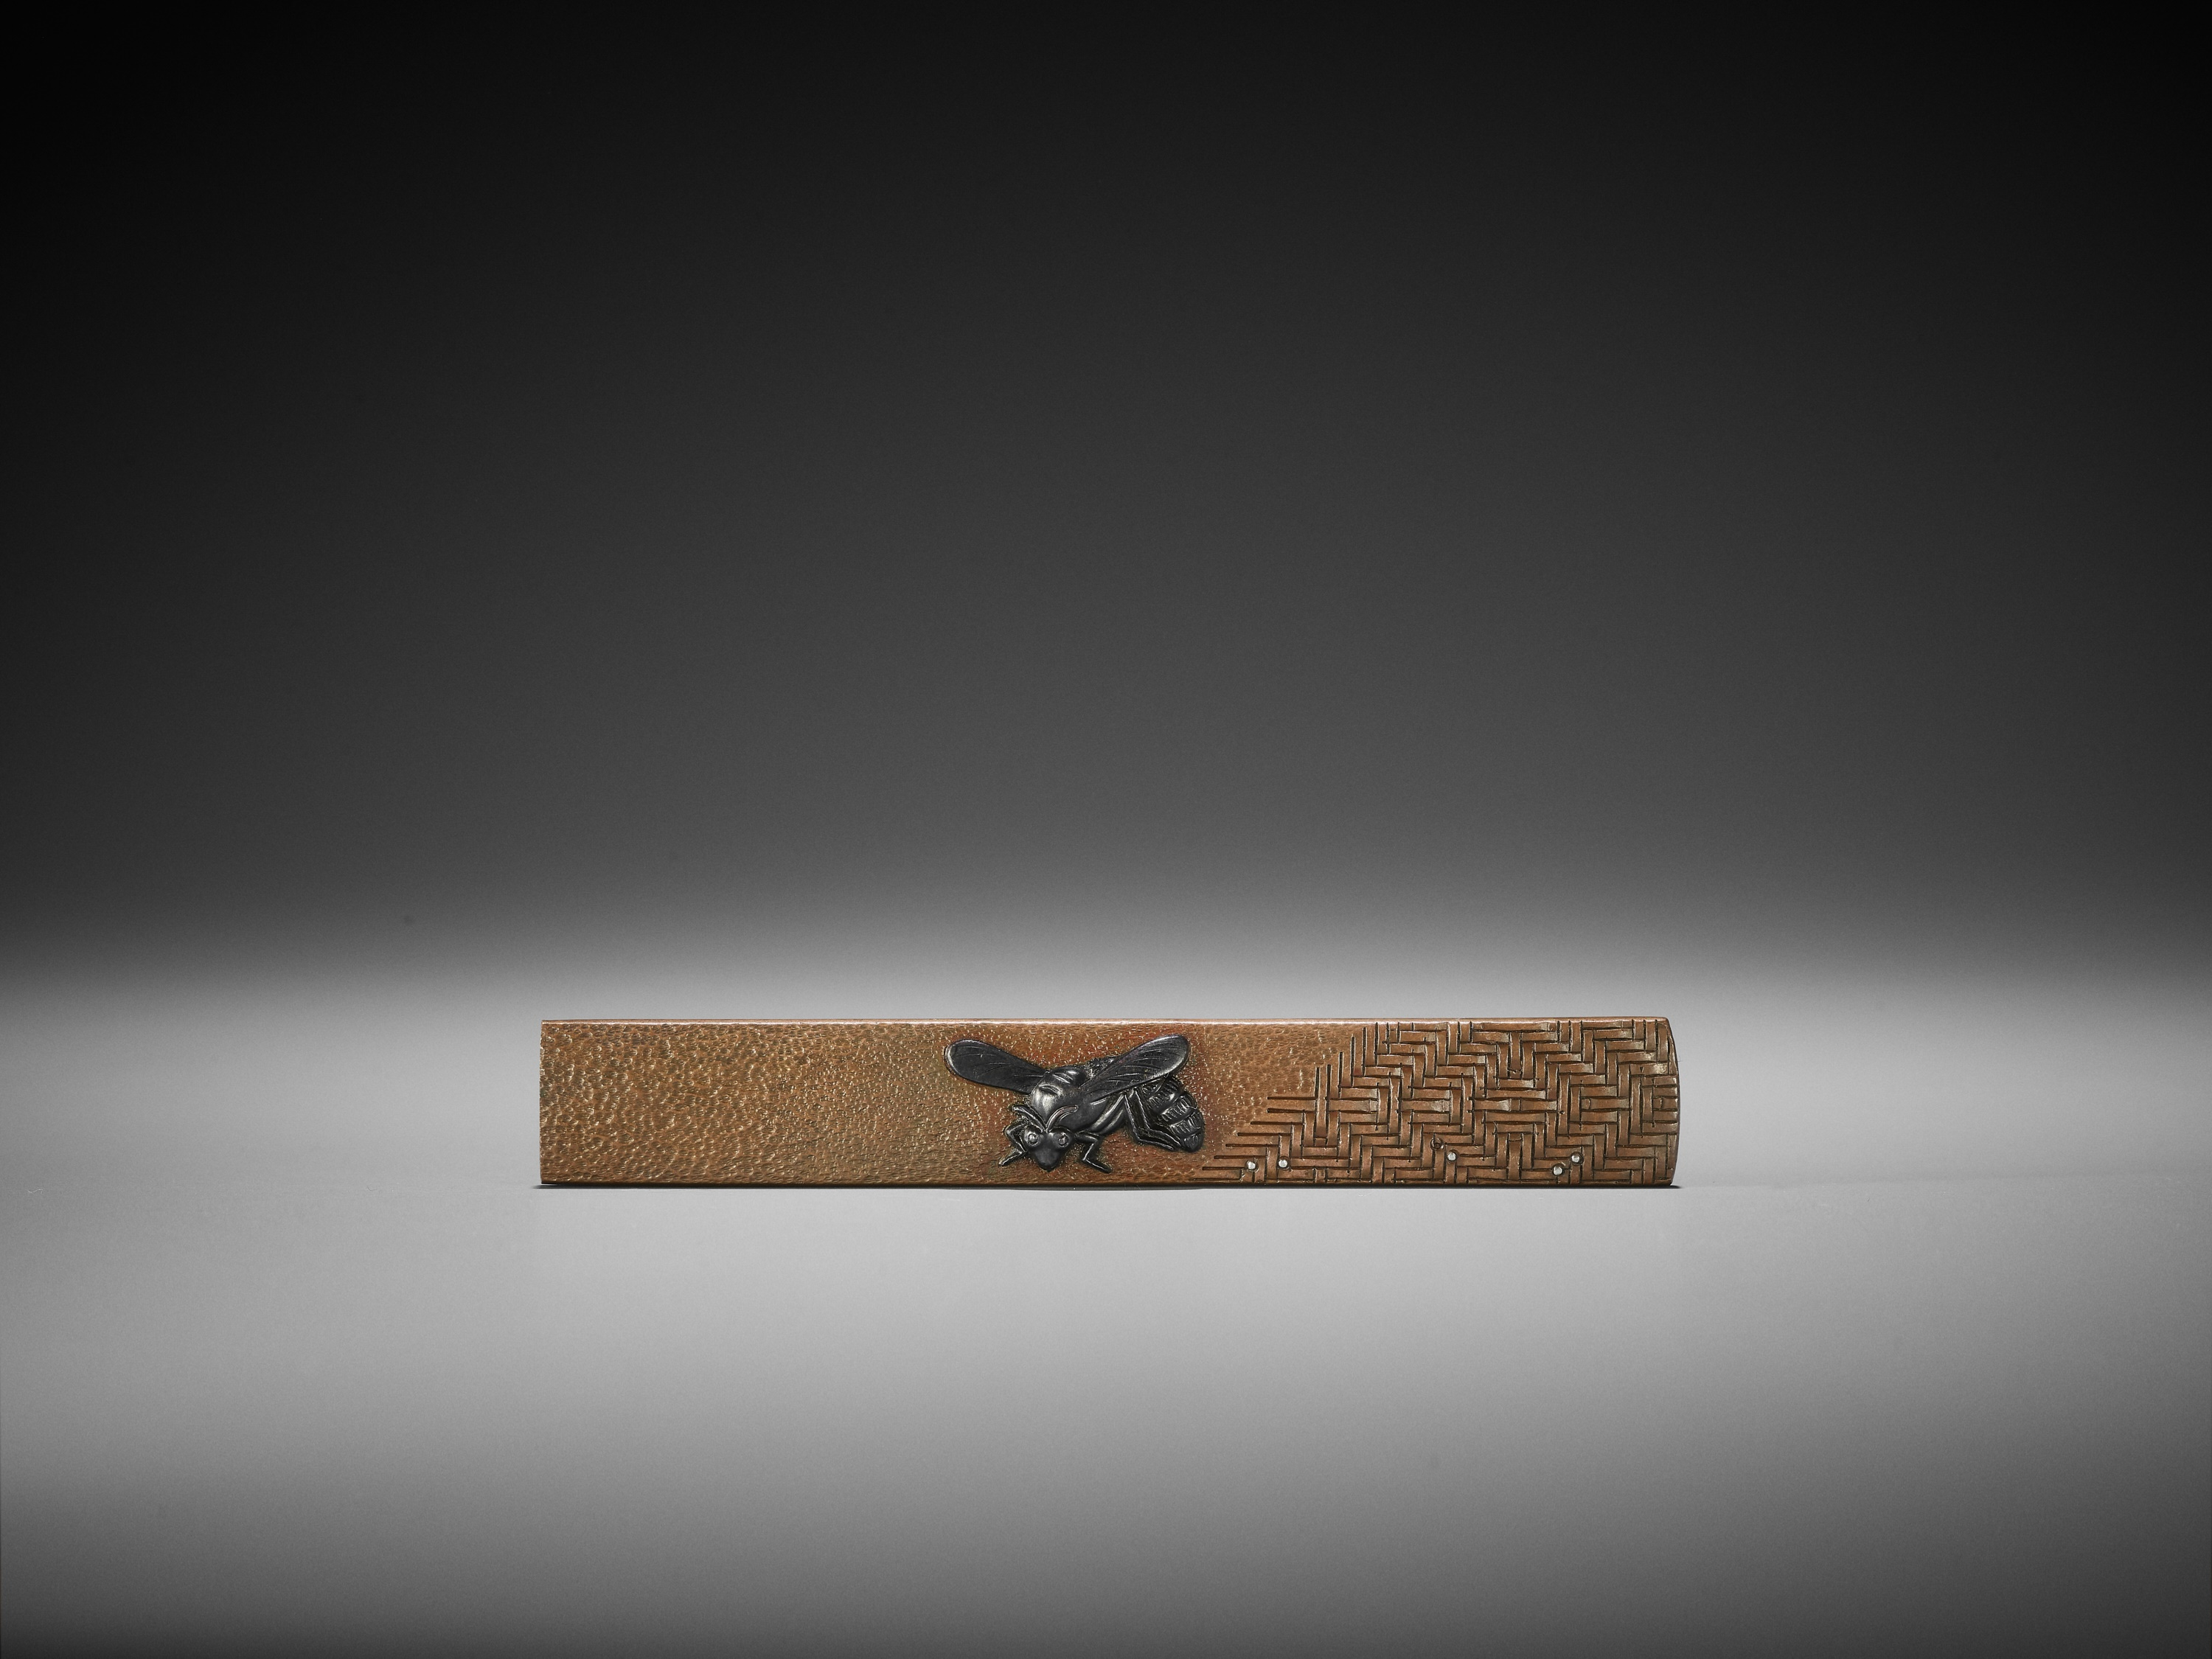 A SILVER AND SHAKUDO-INLAID COPPER KOZUKA WITH A WASP - Image 2 of 4